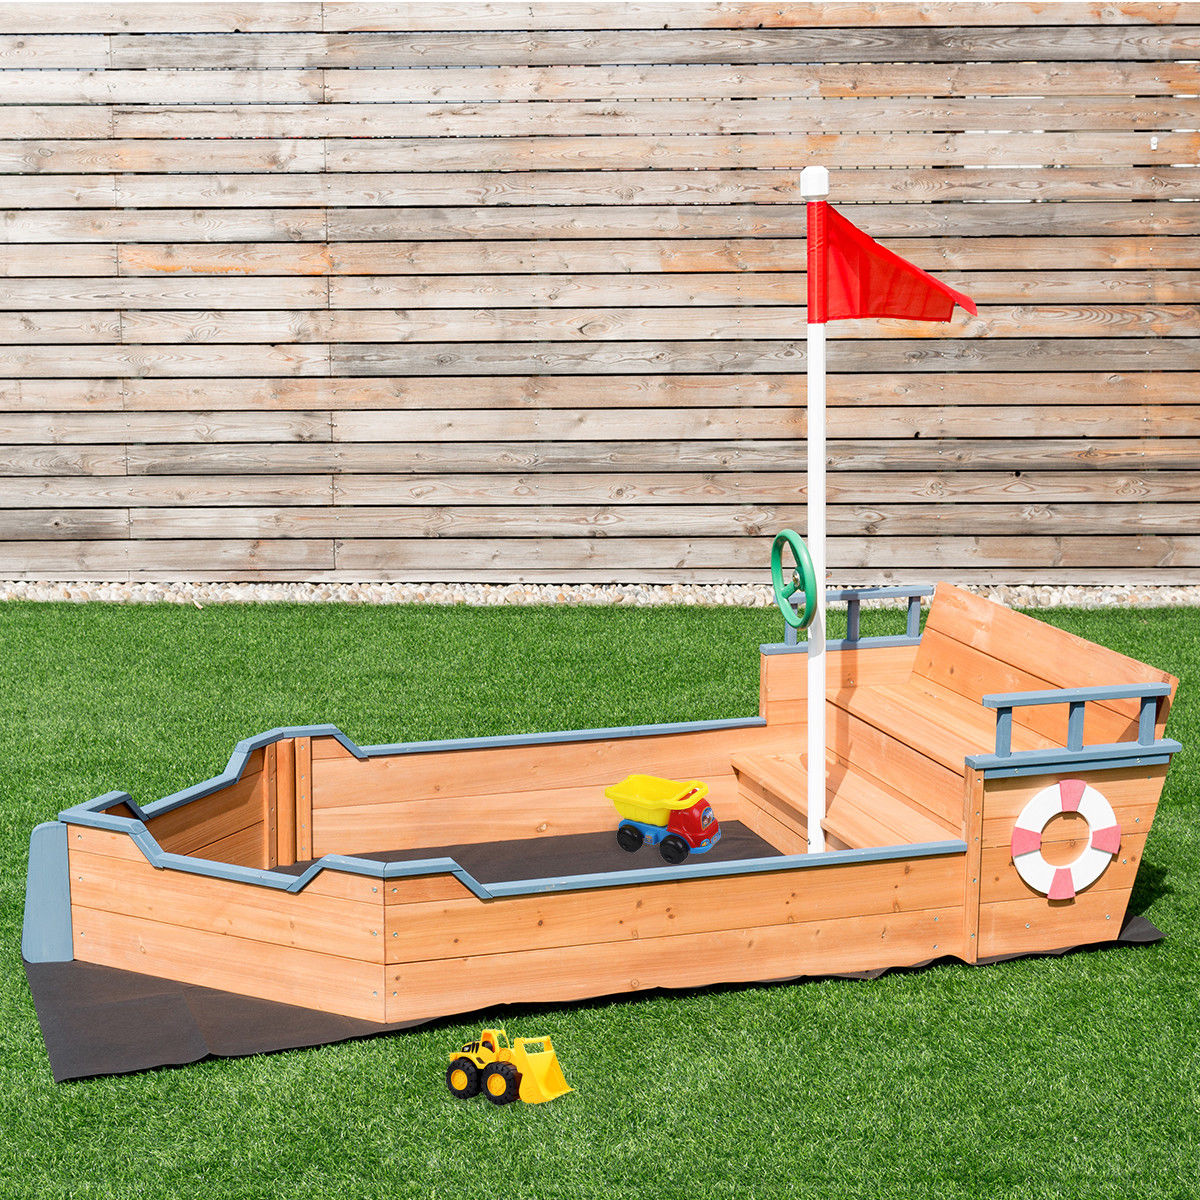 Costway Pirate Boat Wood Sandbox for Kids with Bench Seat and Flag Pirate Sandbox Toys by Costway